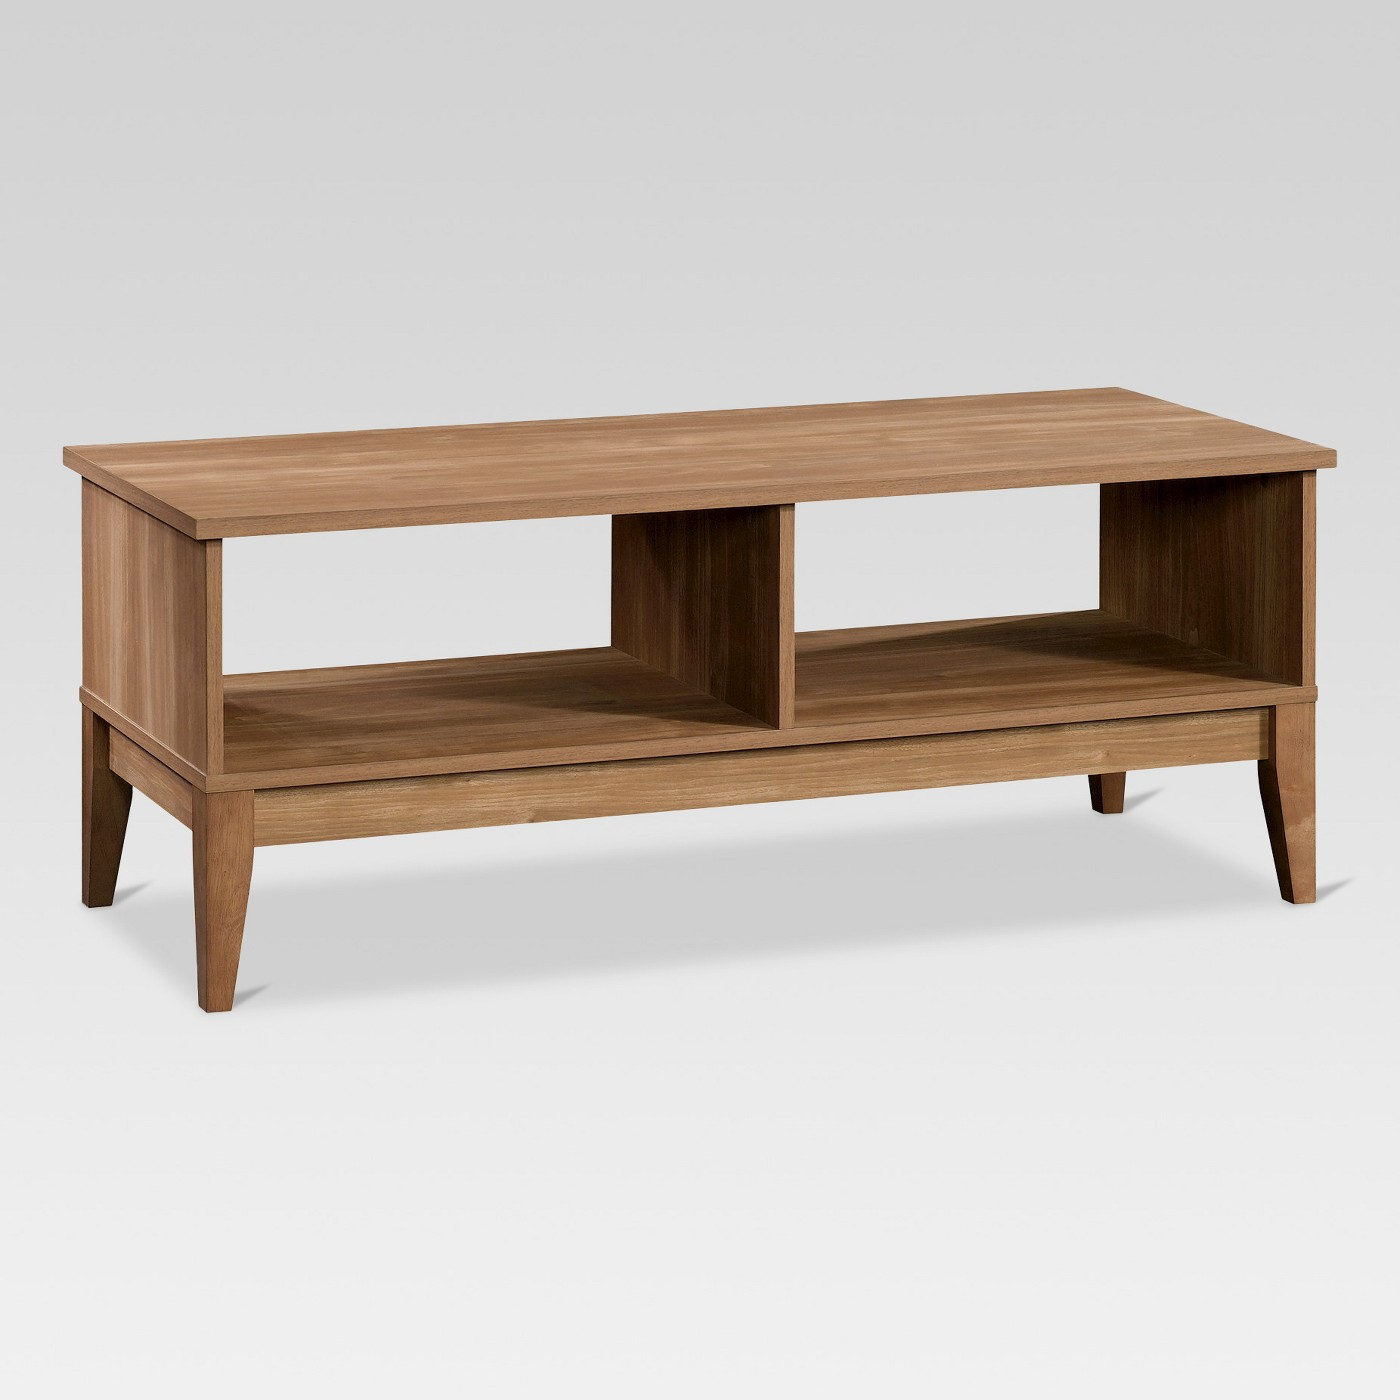 Siegel Coffee Table - Brown - Project 62™ - image 1 of 4